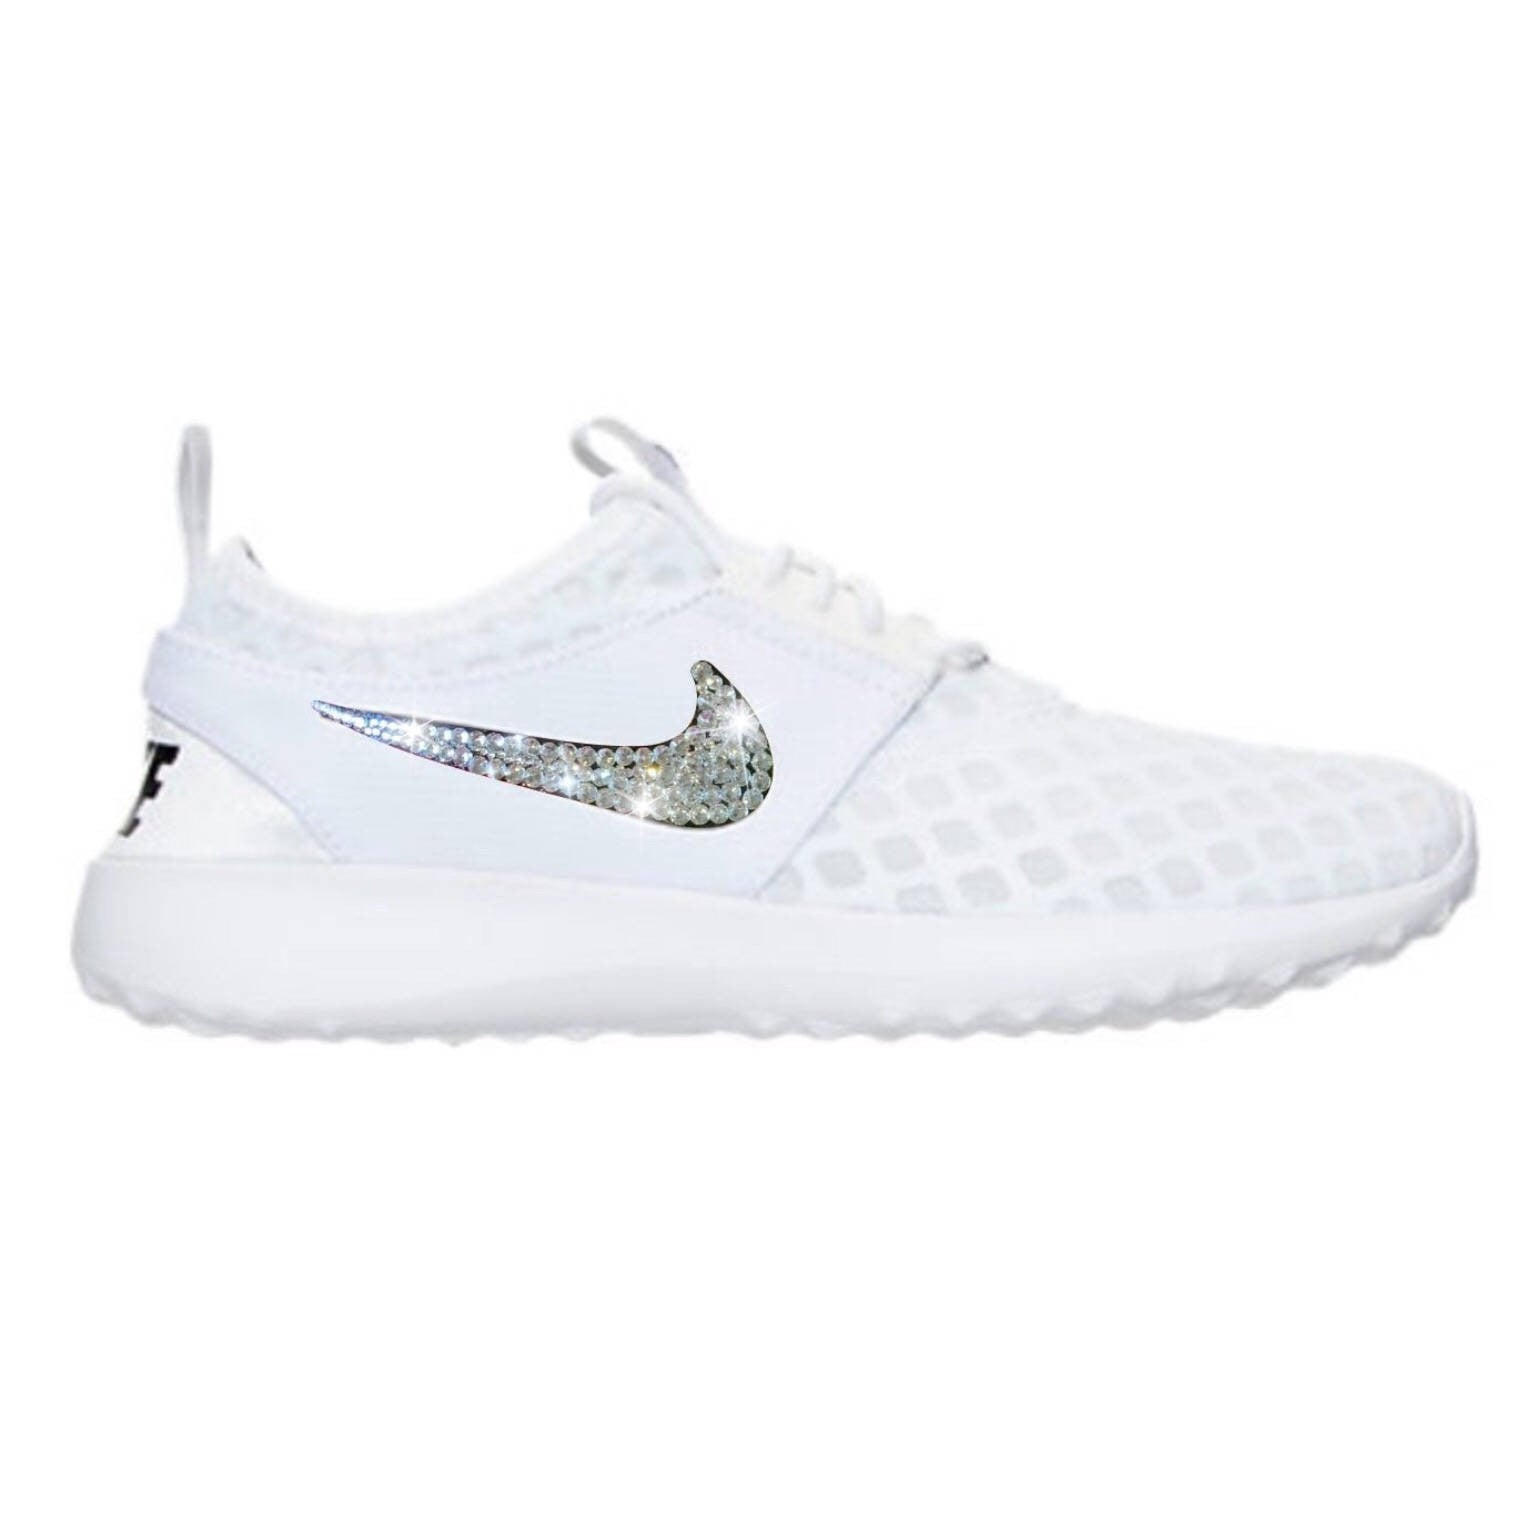 bd9c4e9bf84df Bling Nike Juvenate Shoes with Swarovski Crystals * White & Black *  Bedazzled w/100% Authentic Swarovski Crystal Rhinestones